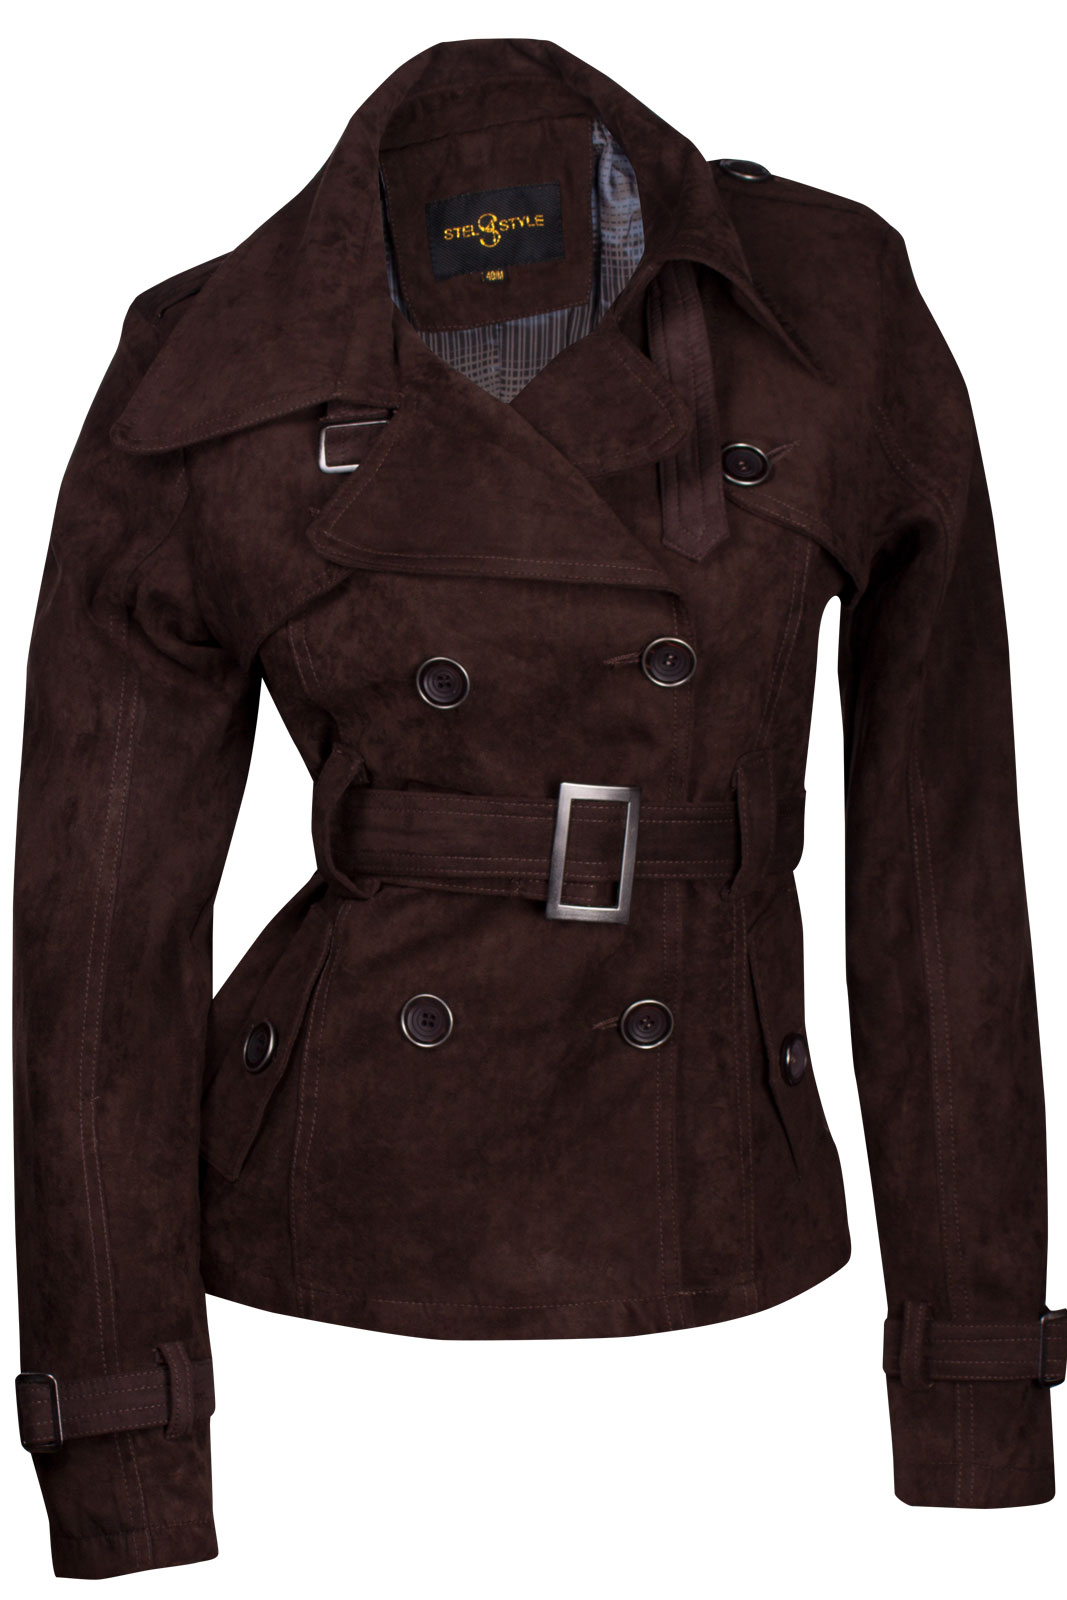 sexy damen bergangsjacke trenchcoat jacke wildlederimitat mantel s m l xl ebay. Black Bedroom Furniture Sets. Home Design Ideas